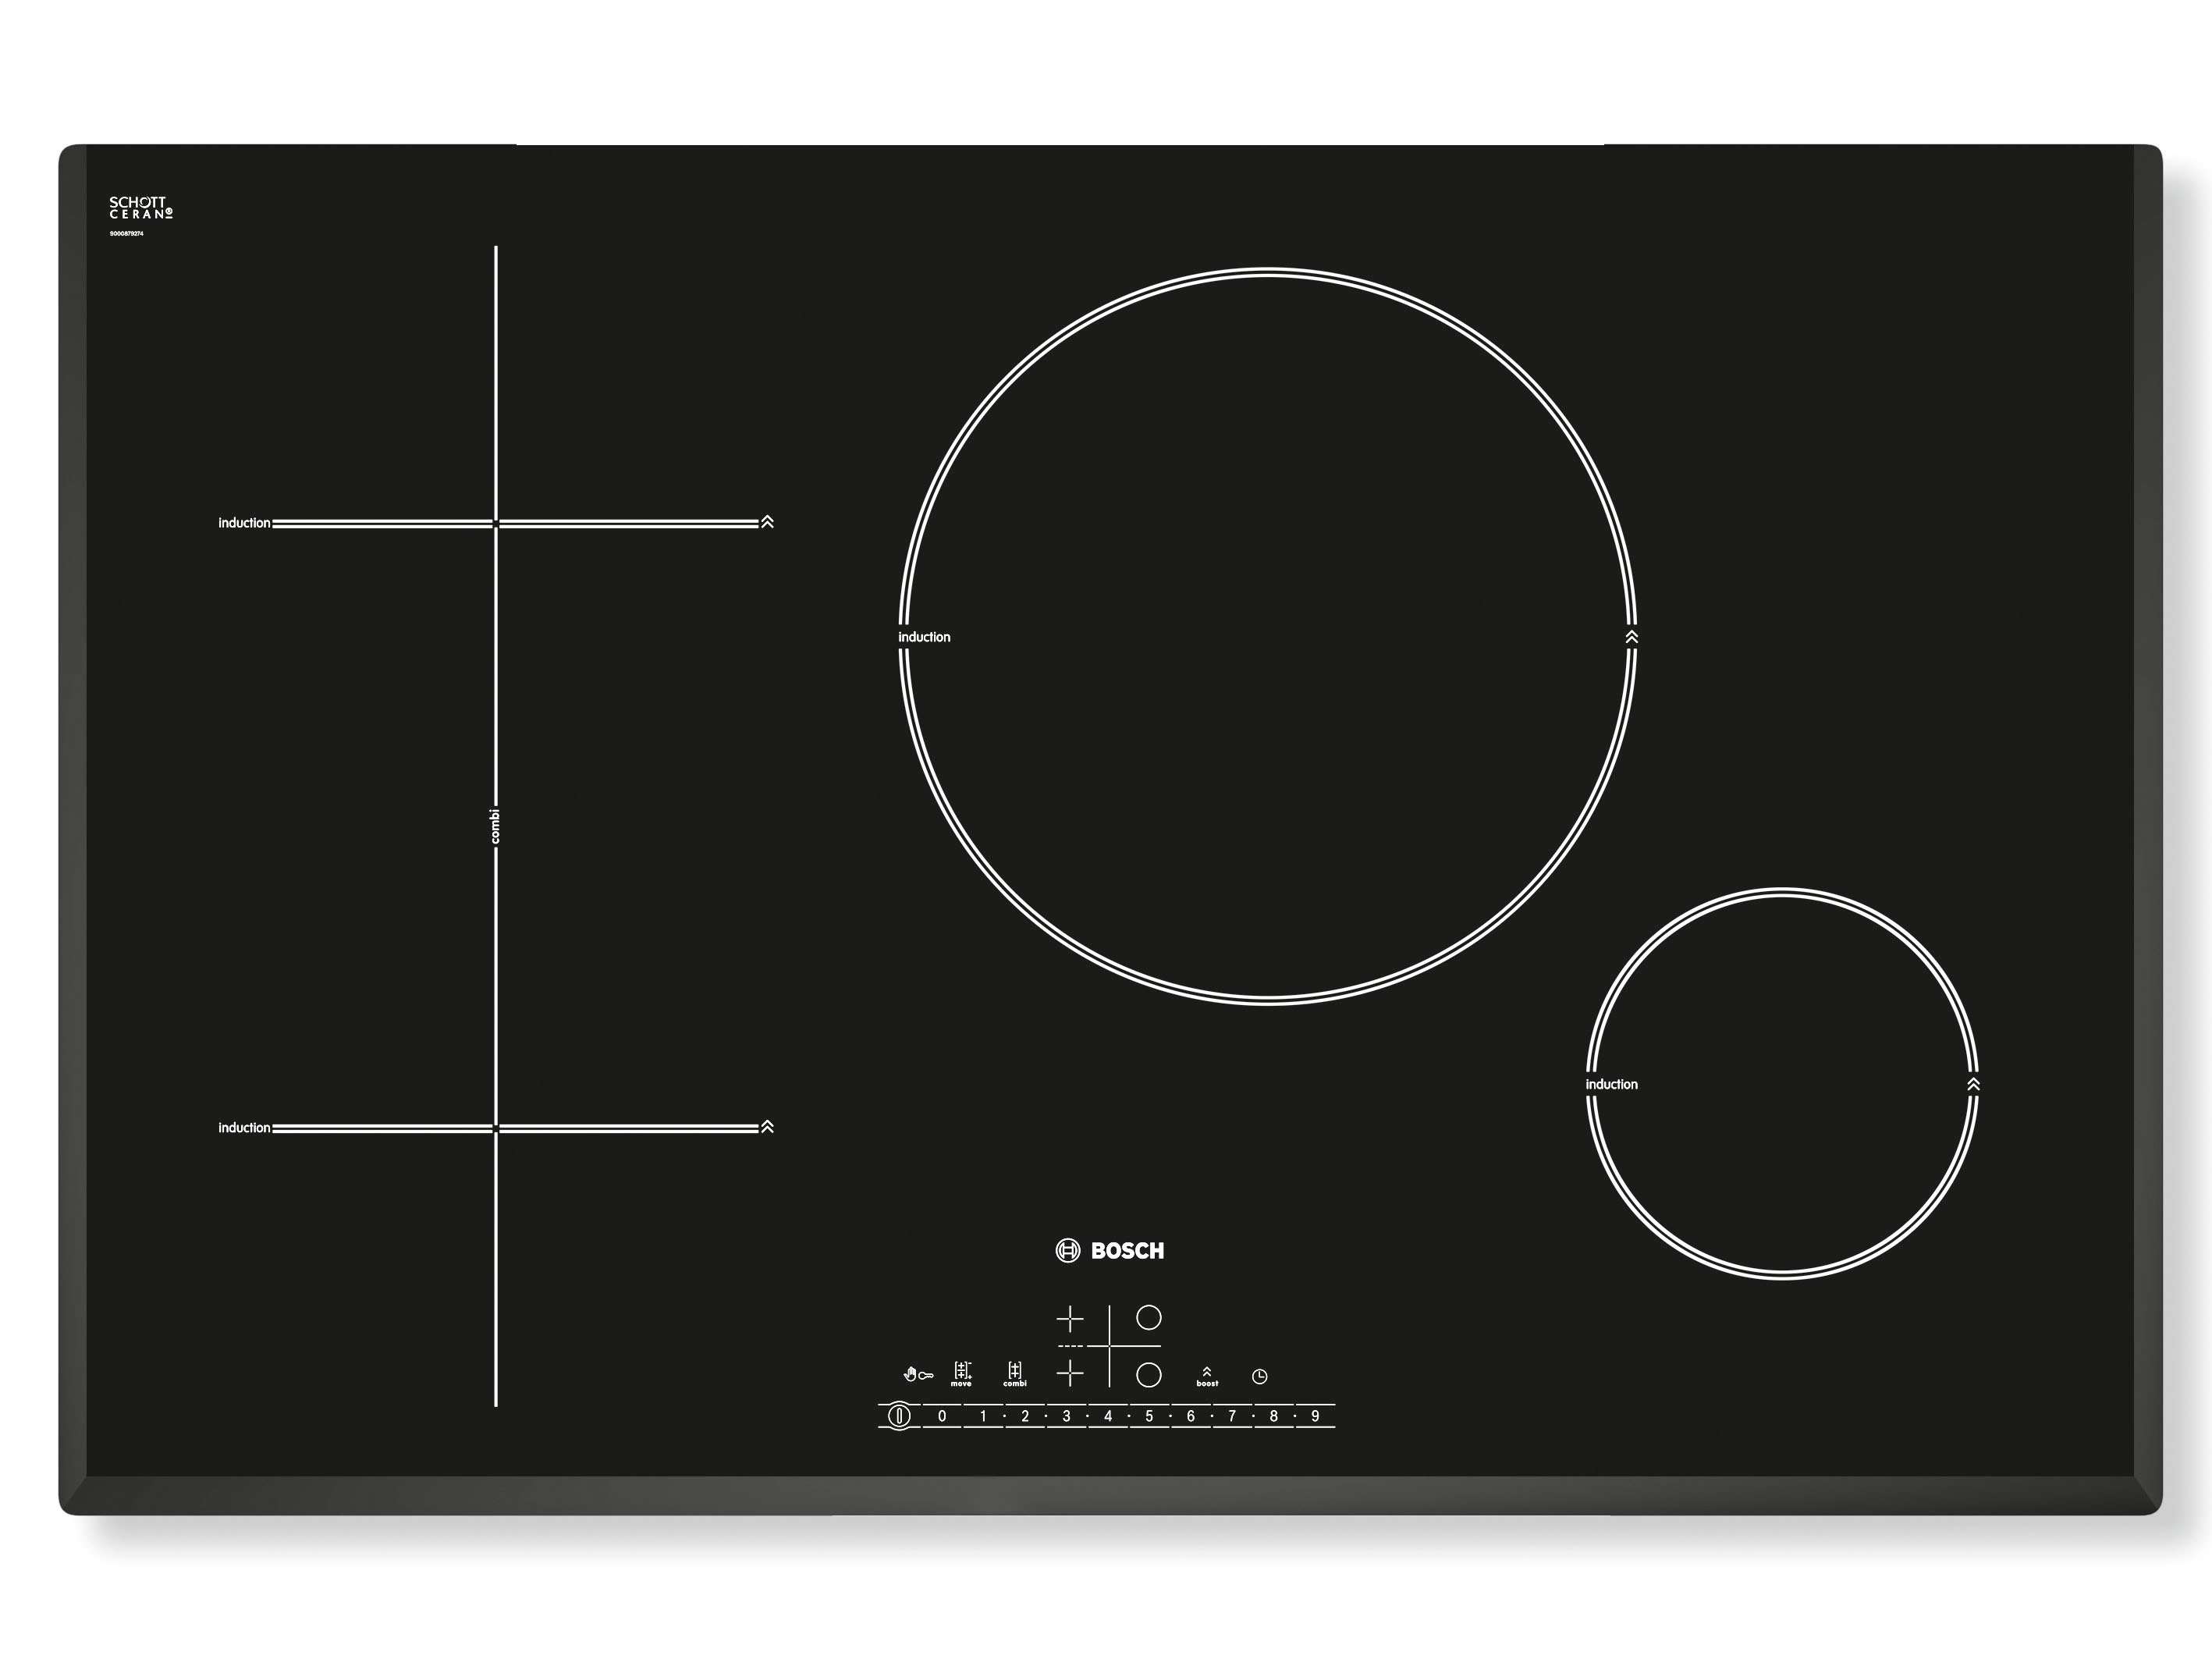 80cm Induction Cooktop Bosch 39s Combi Induction Cooktop The Kitchen And Bathroom